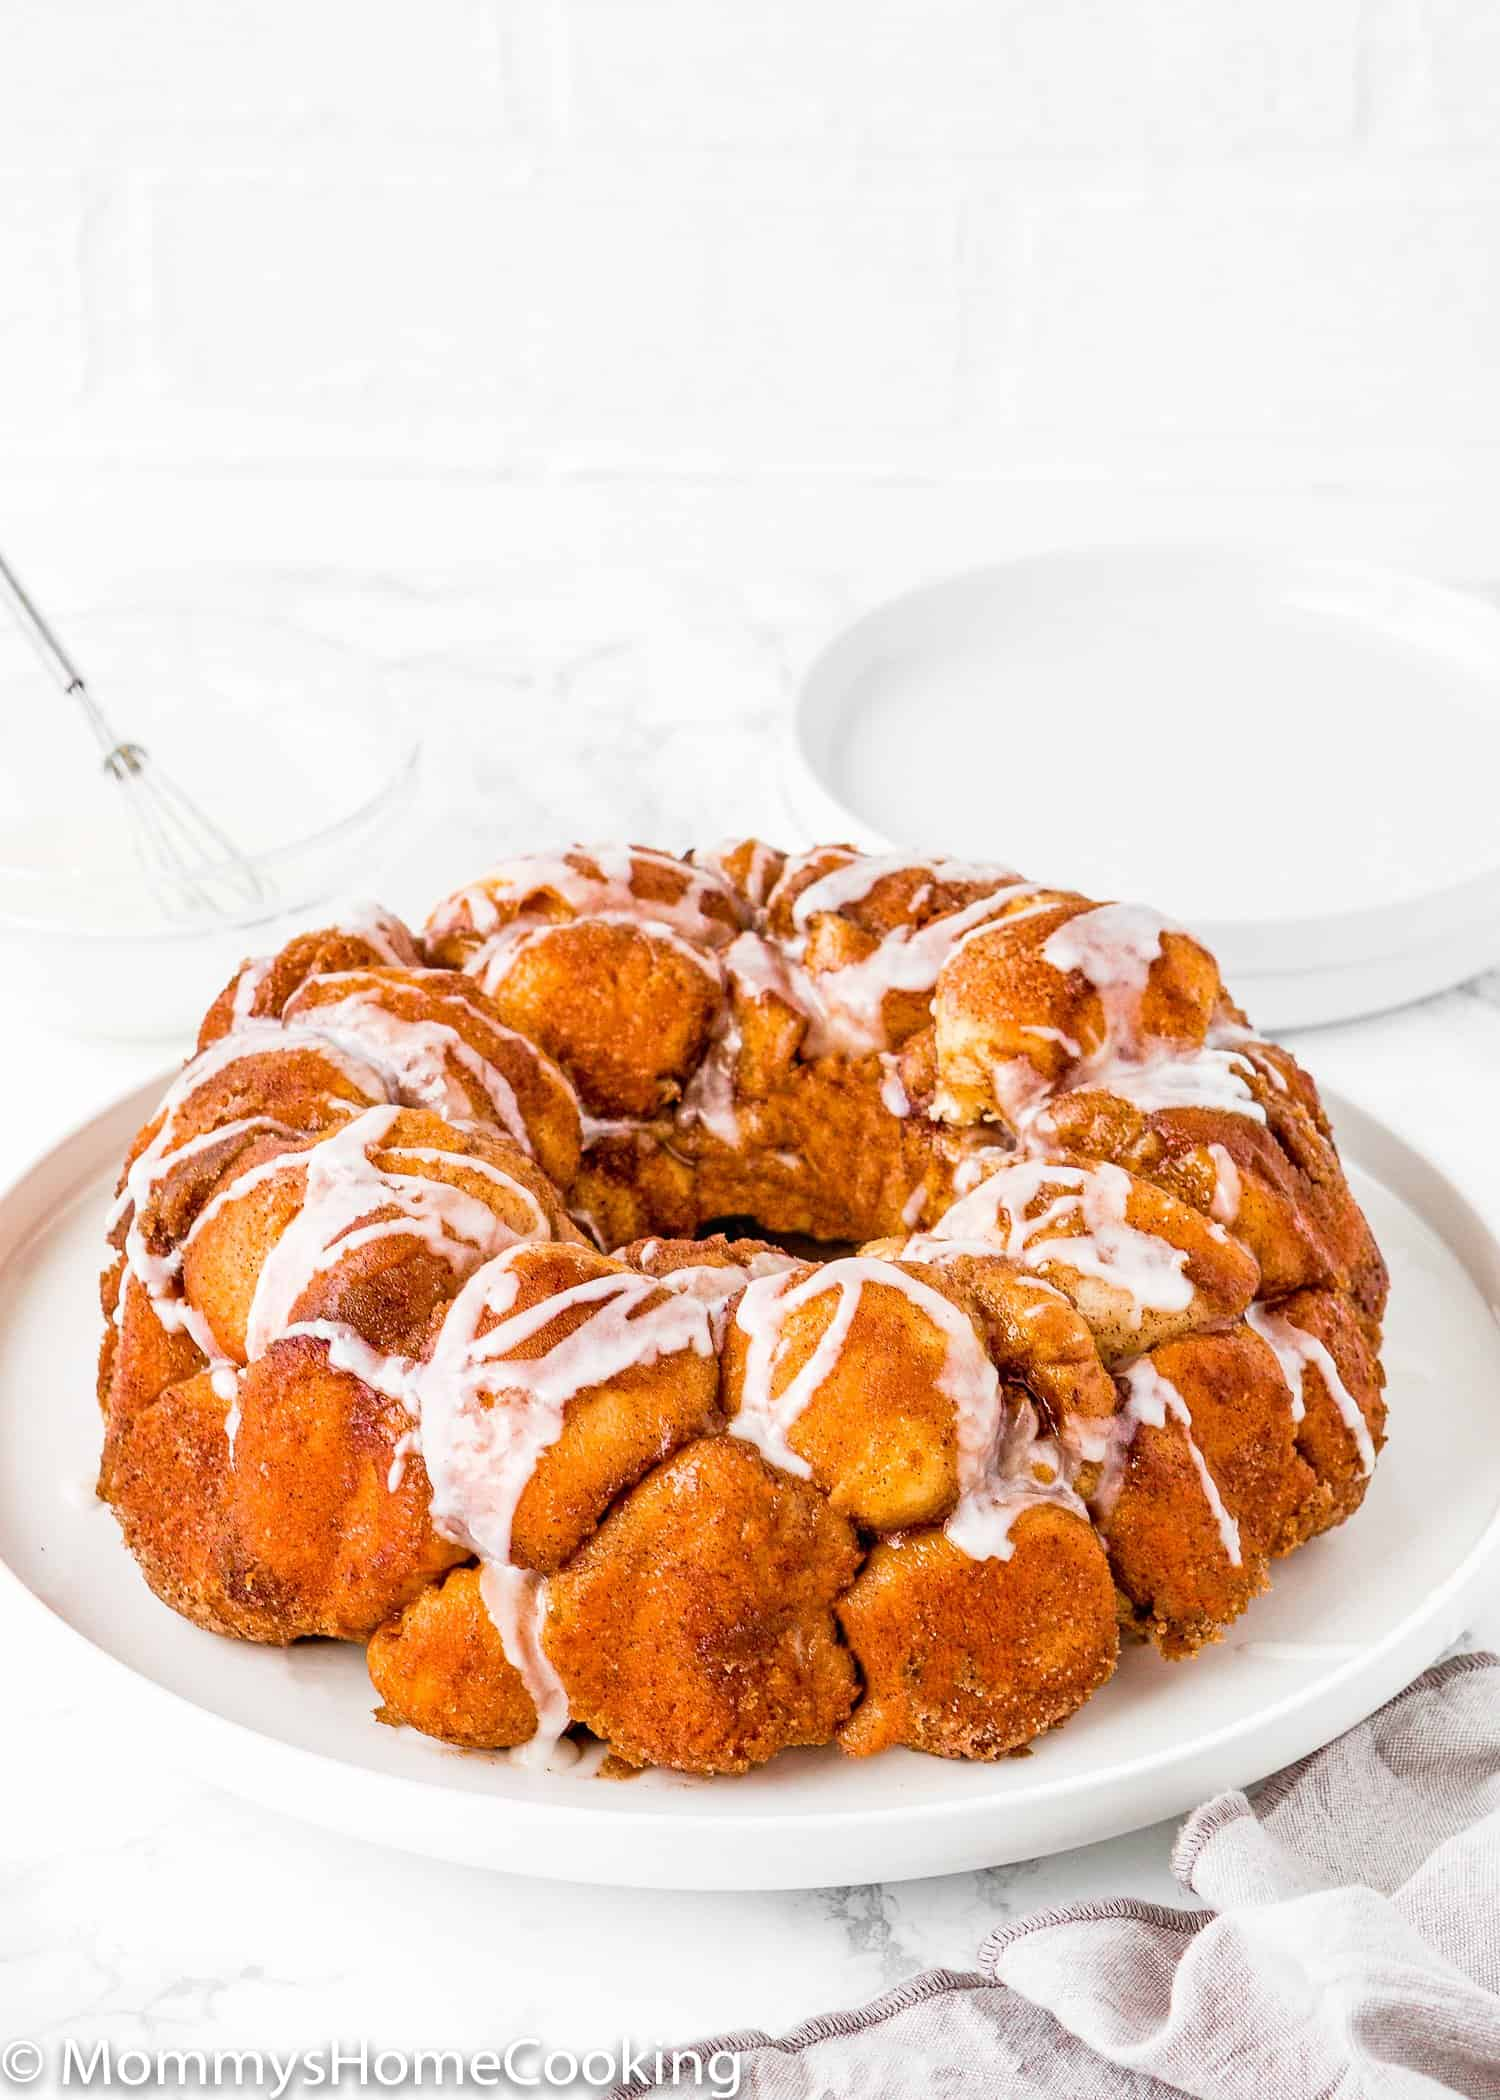 Homemade Eggless Monkey Bread on a plate drizzled with sugar glaze